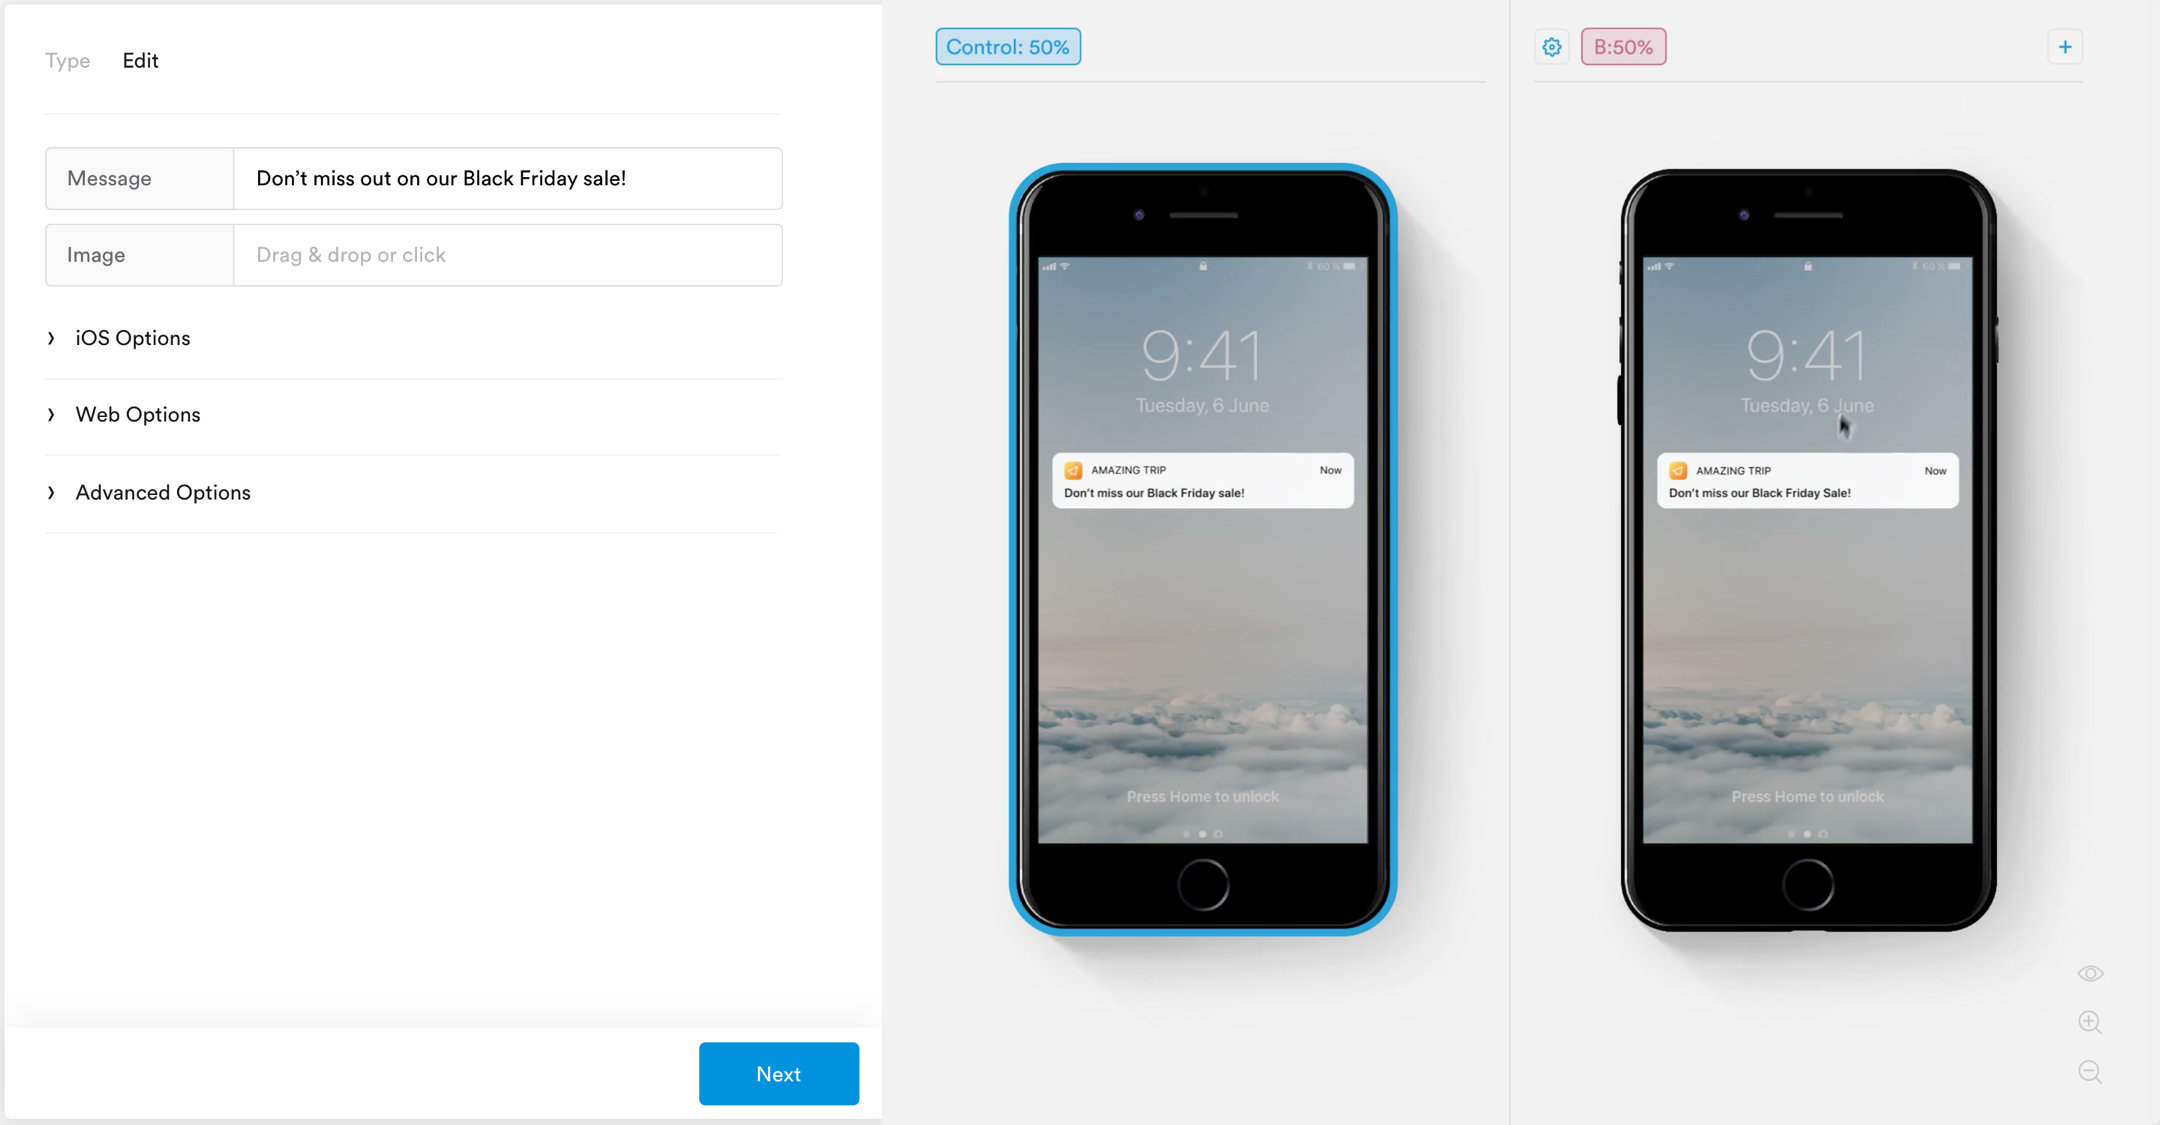 Mobile A/B Testing in Real-time to Improve ROI | Leanplum